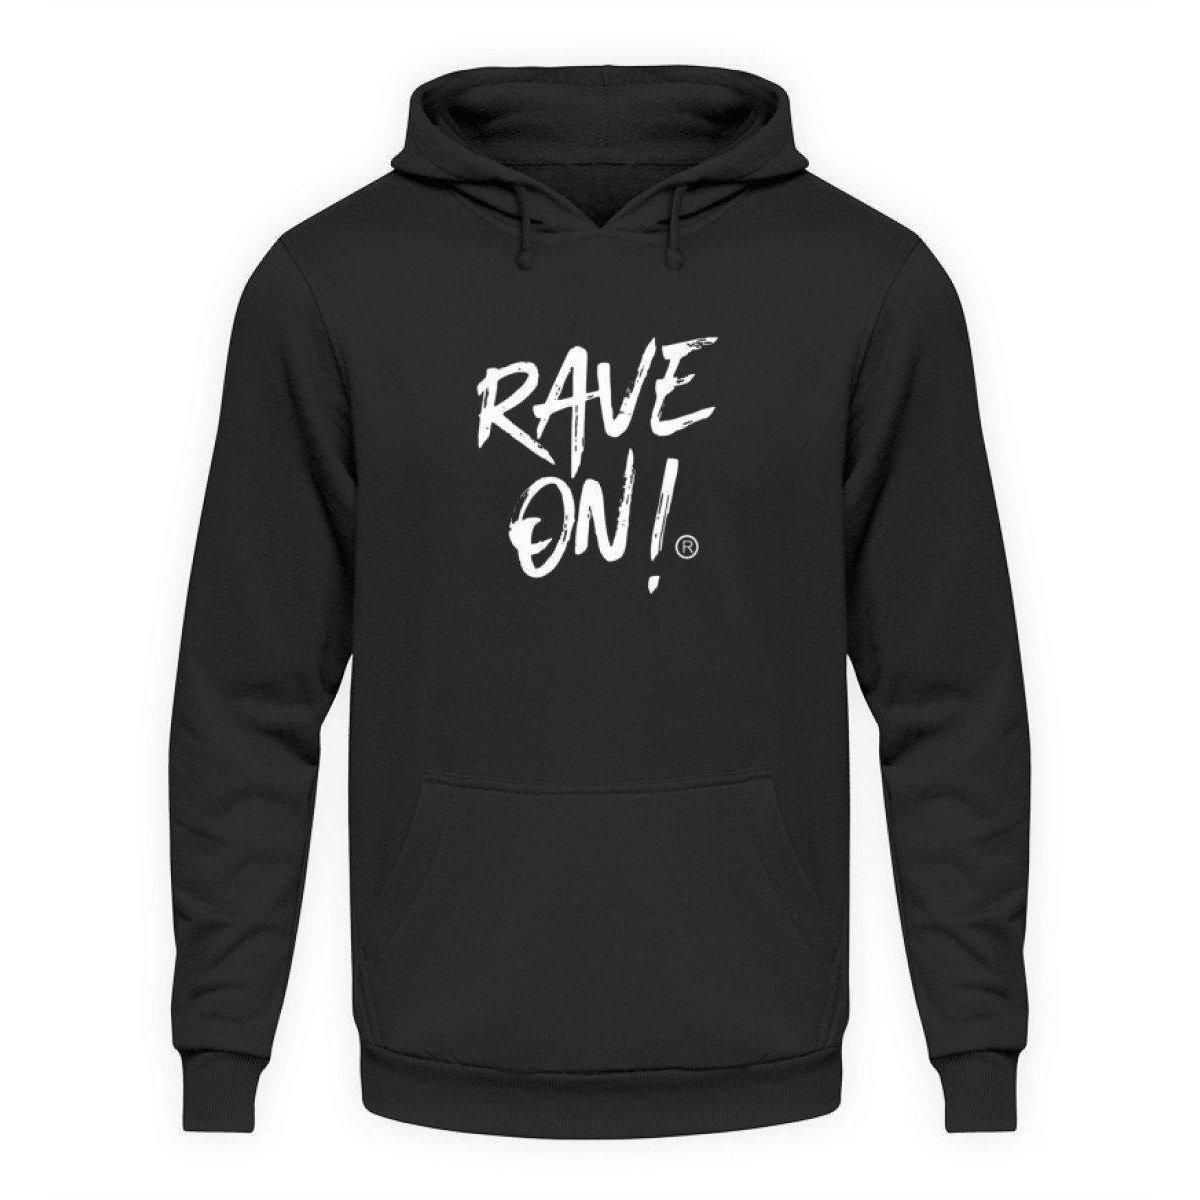 Rave On!® Black Collection - Unisex Kapuzenpullover Hoodie Unisex Hoodie Jet Schwarz / L - Rave On!® der Club & Techno Szene Shop für Coole Junge Mode Streetwear Style & Fashion Outfits + Sexy Festival 420 Stuff